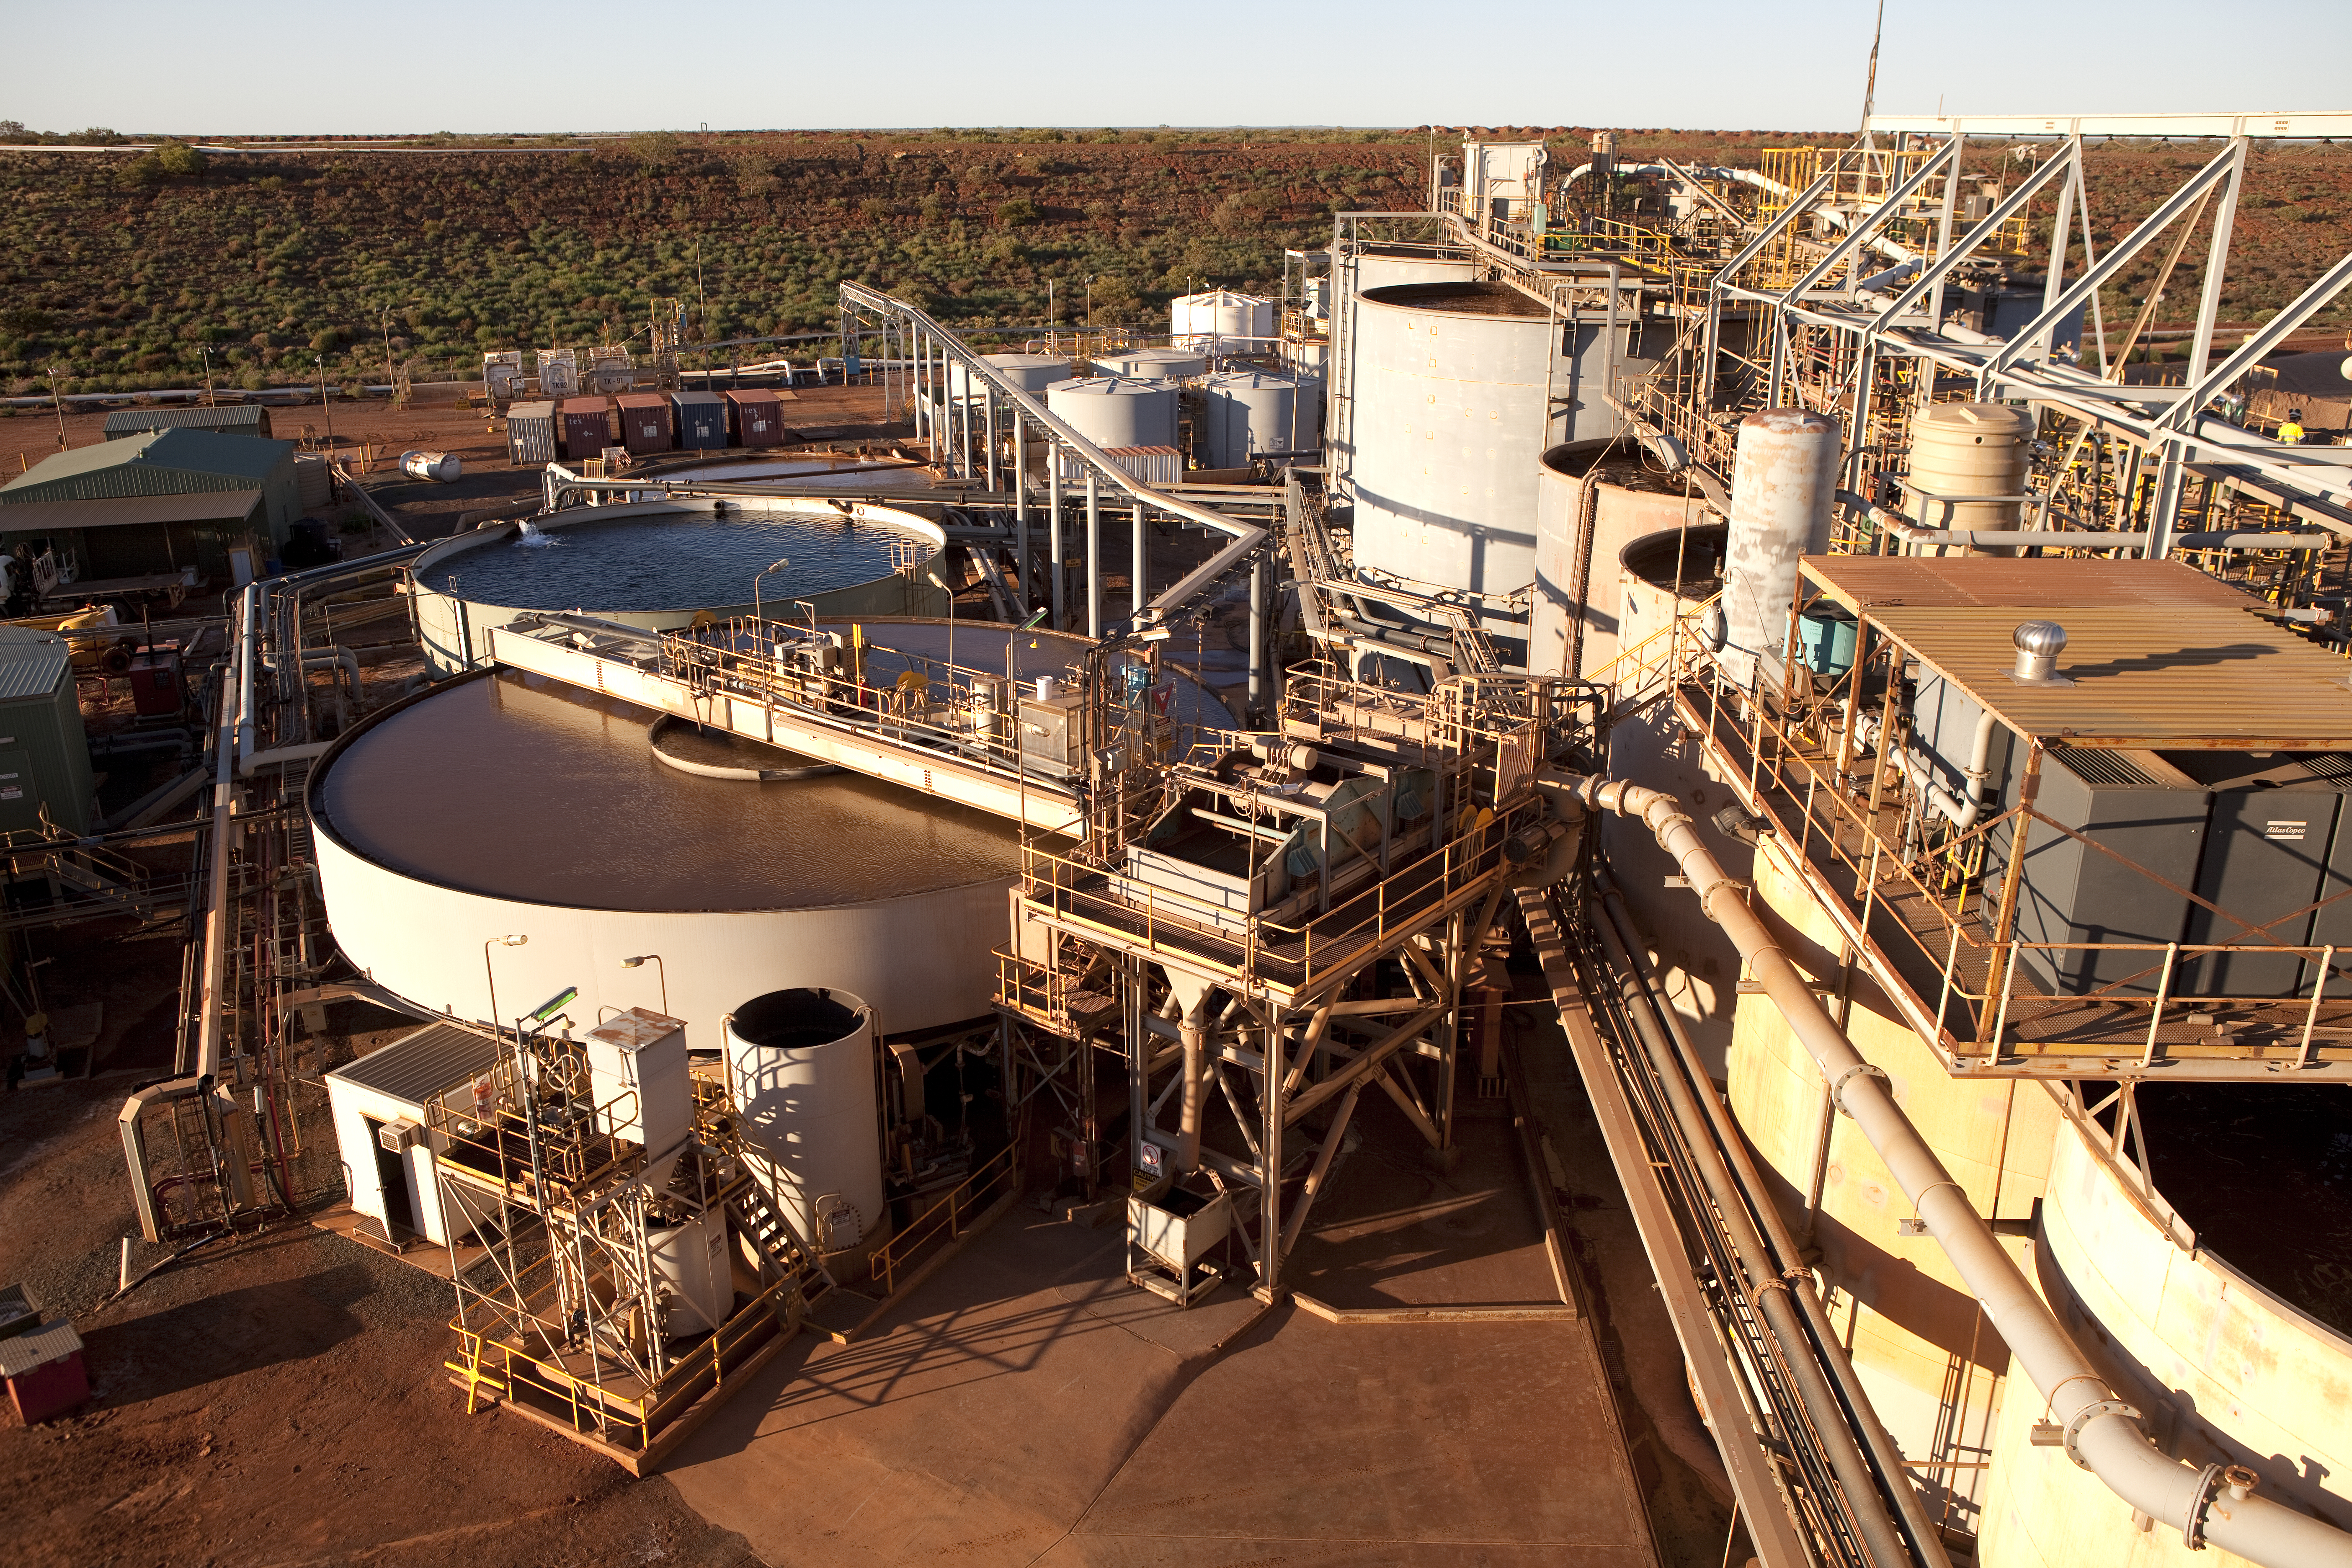 Fig. 1: The Tanami gold mine is an underground operation that produces 459 000 attributable ounces of gold annually.